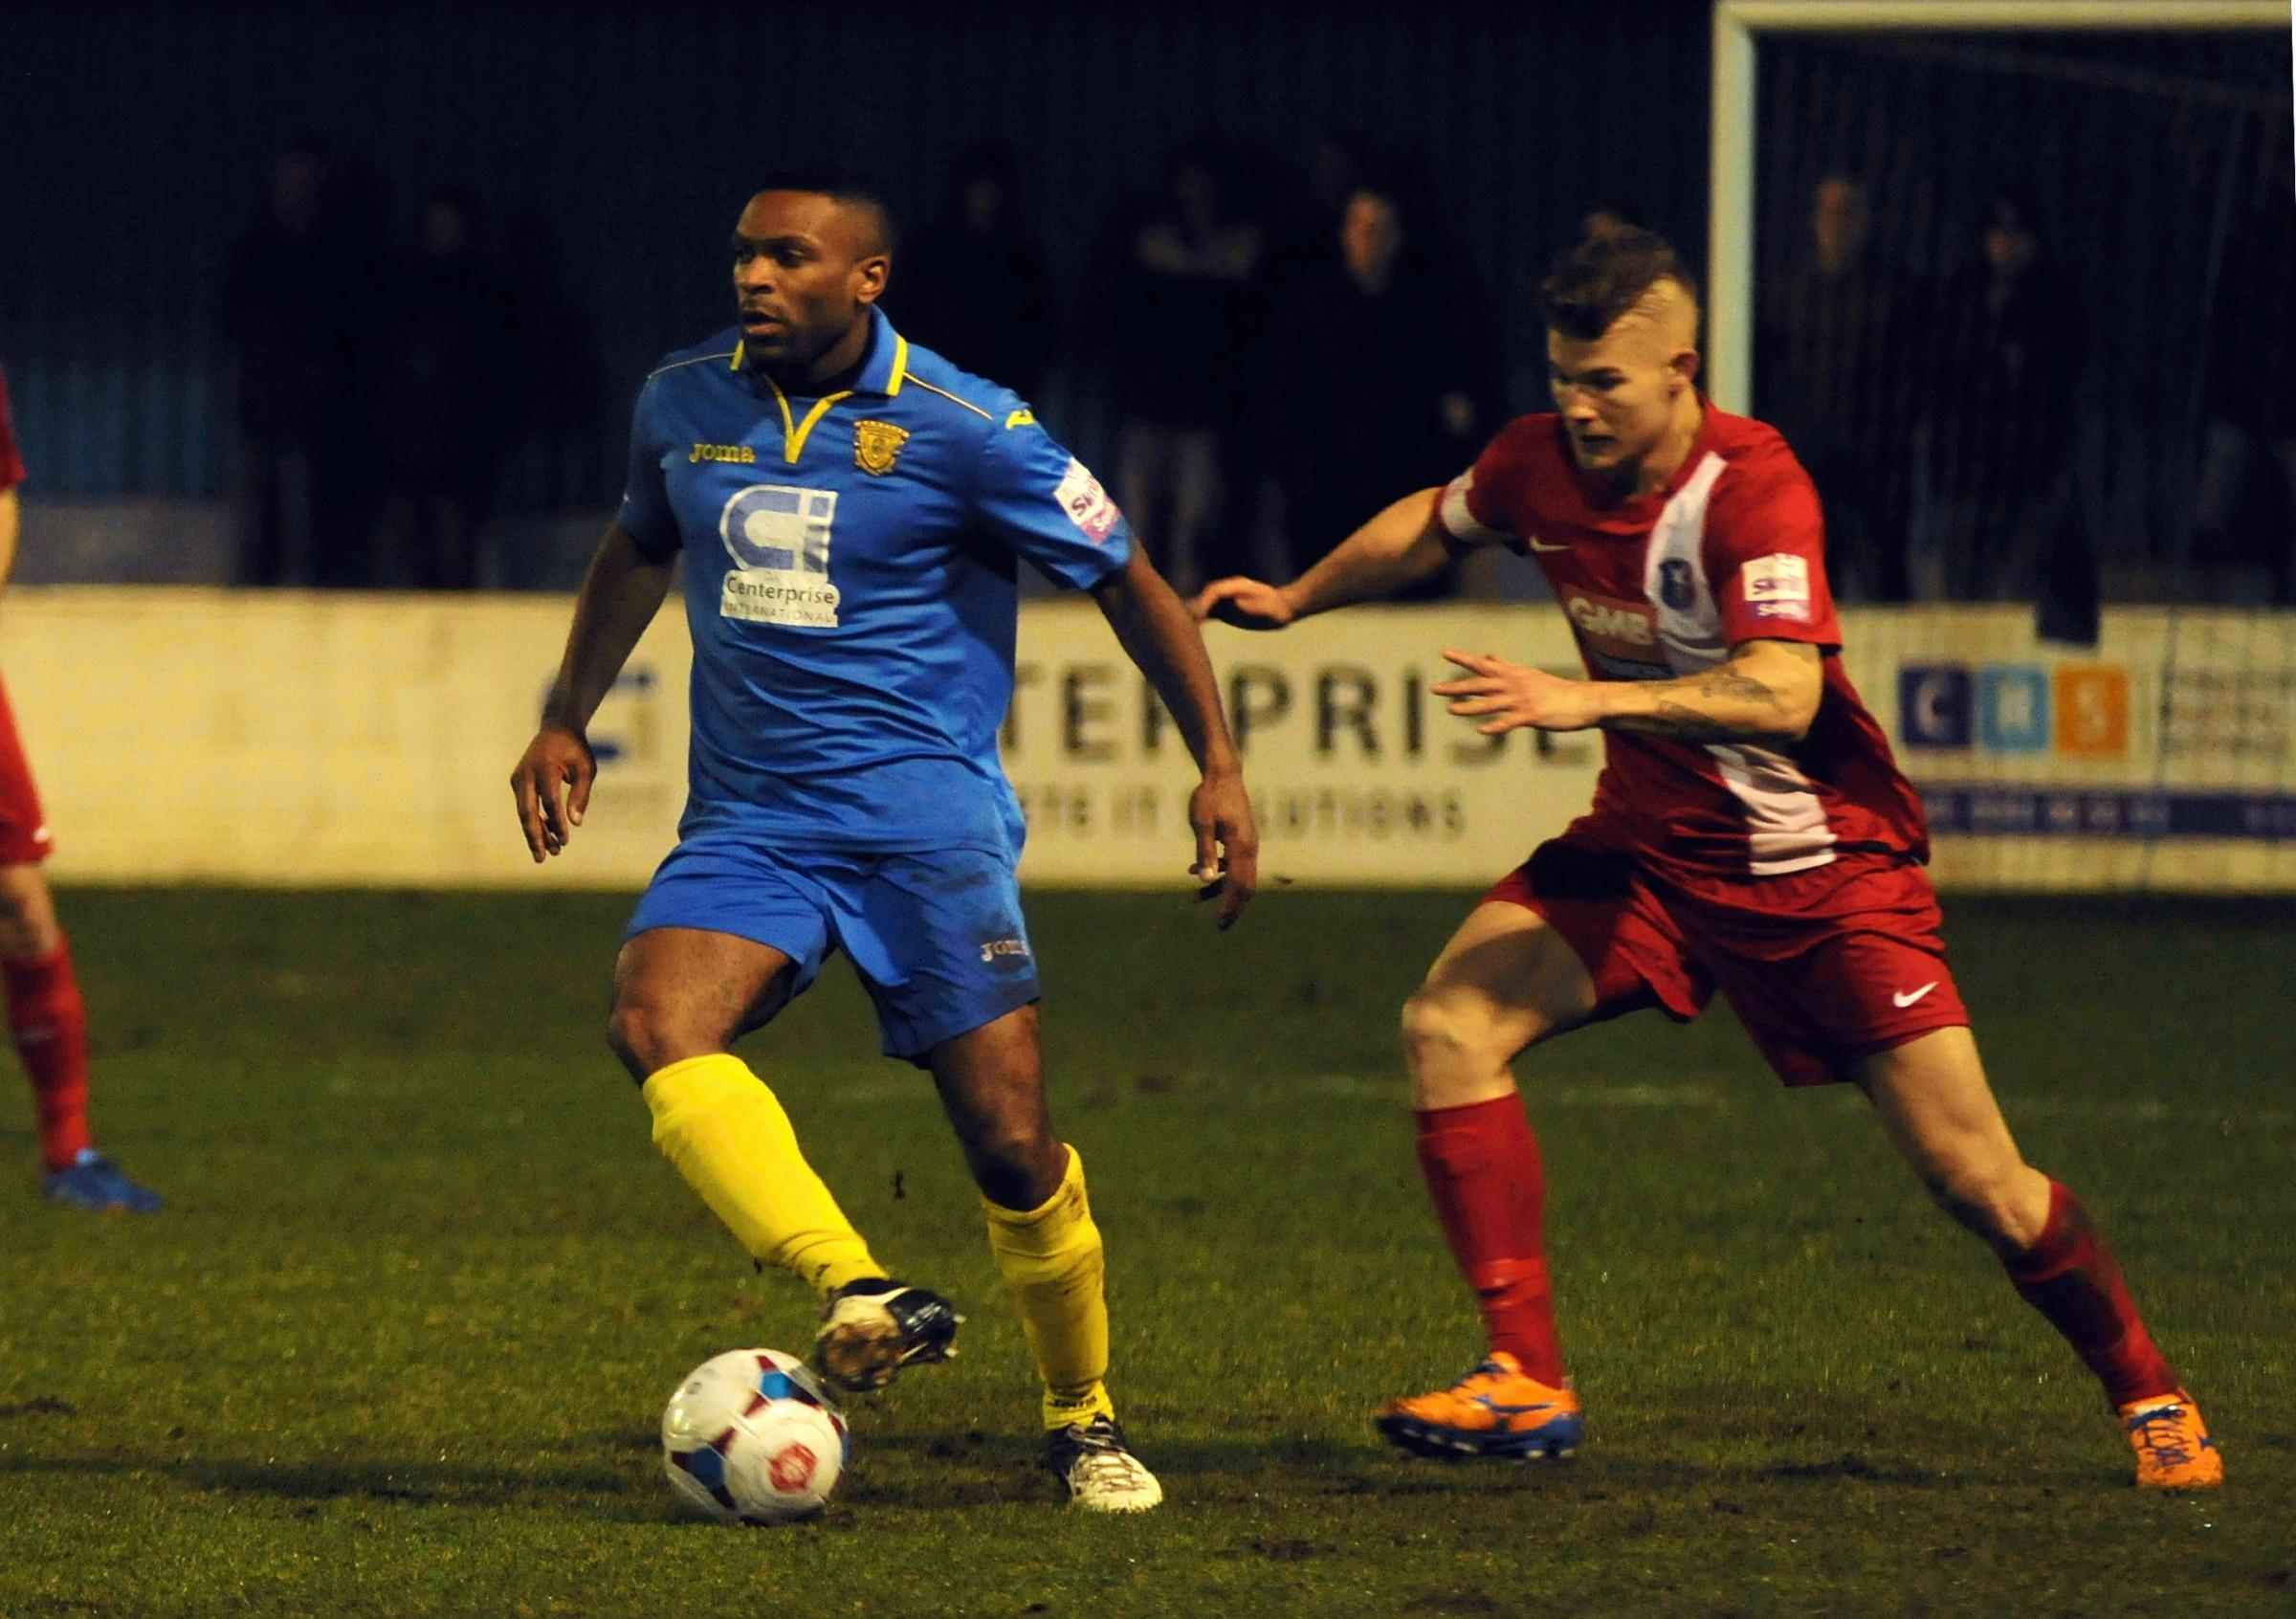 Kezie Ibe's goal was a rare highlight on a bad night for Basingstoke Town.